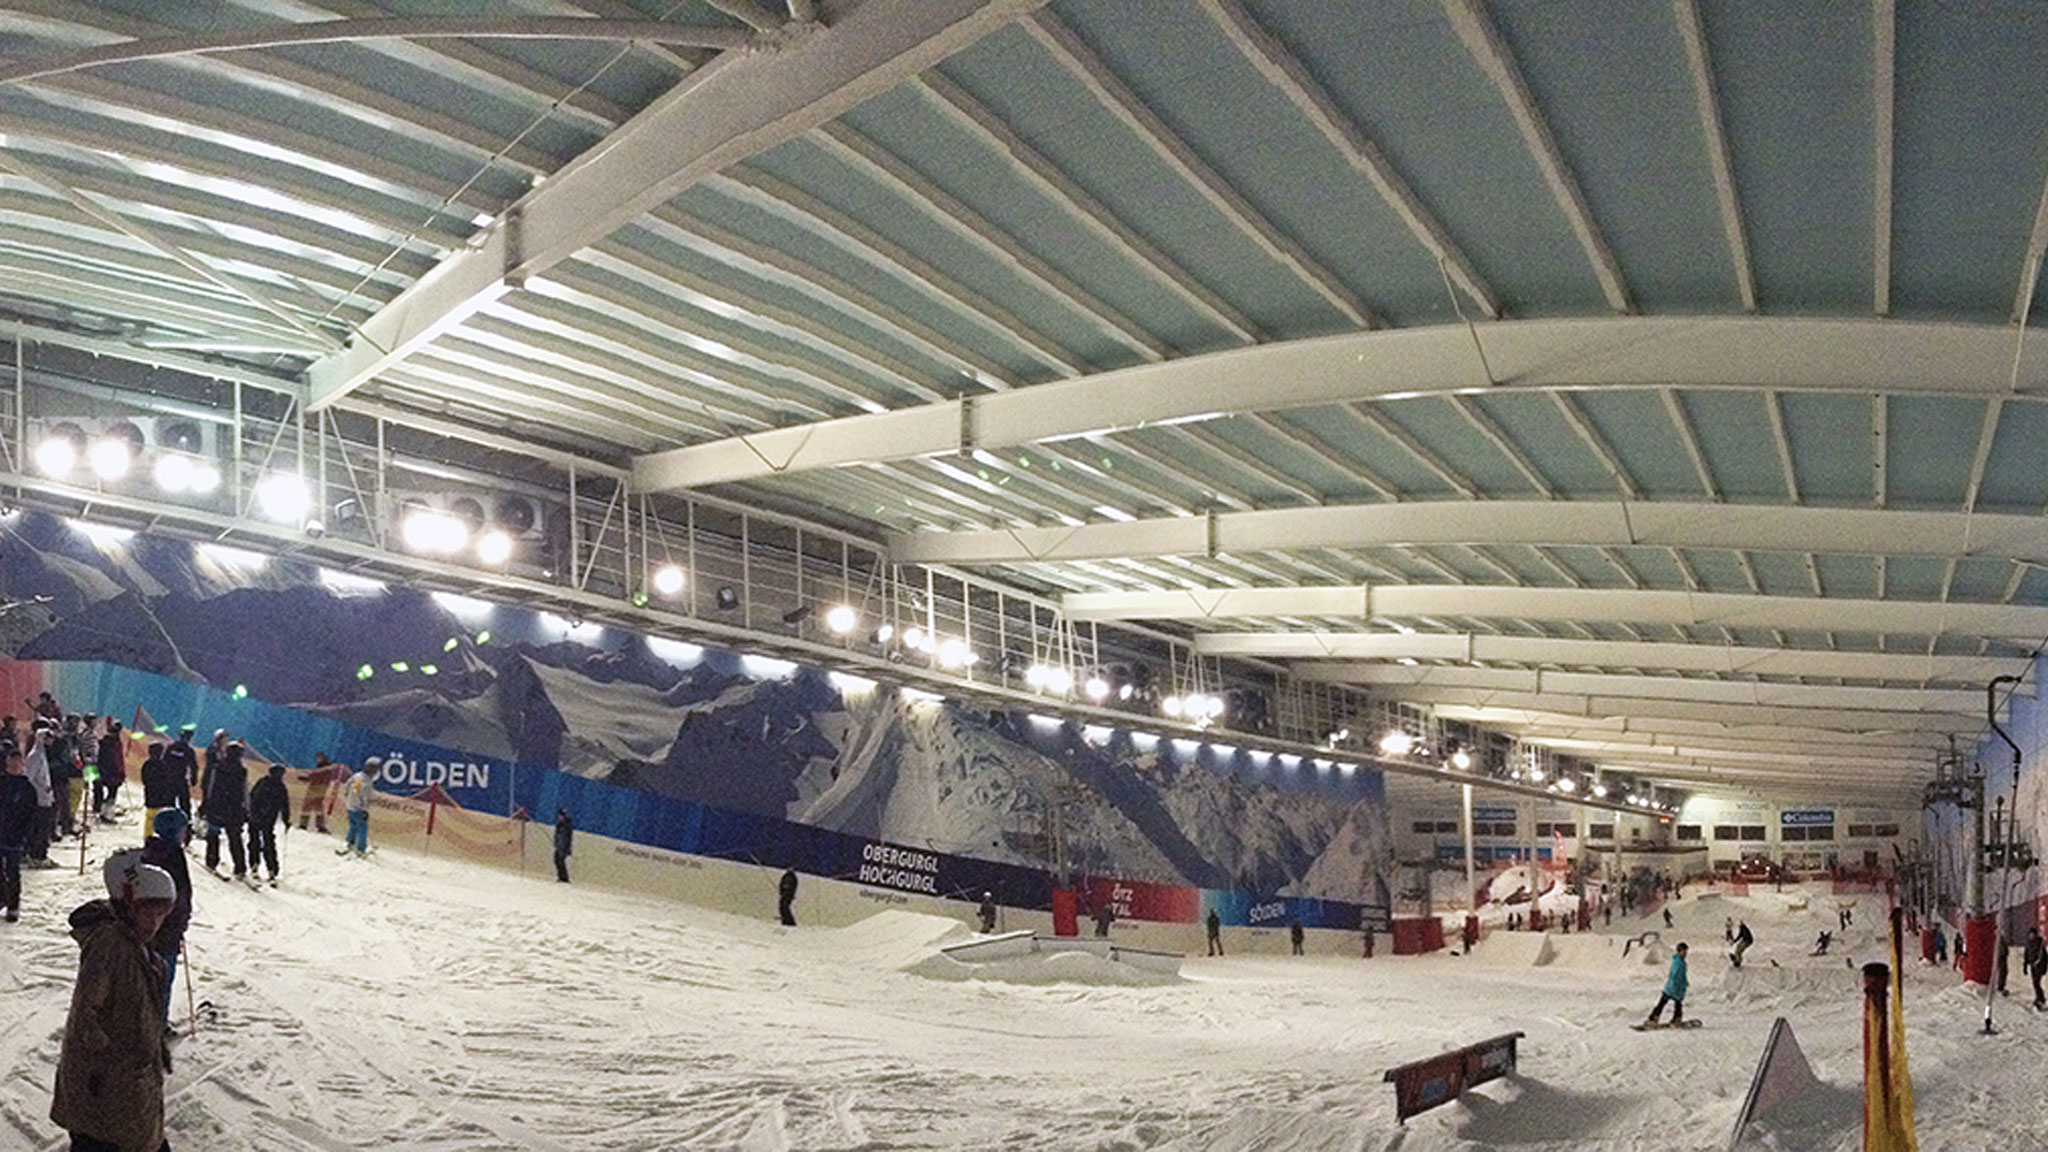 The Snow Centre, England